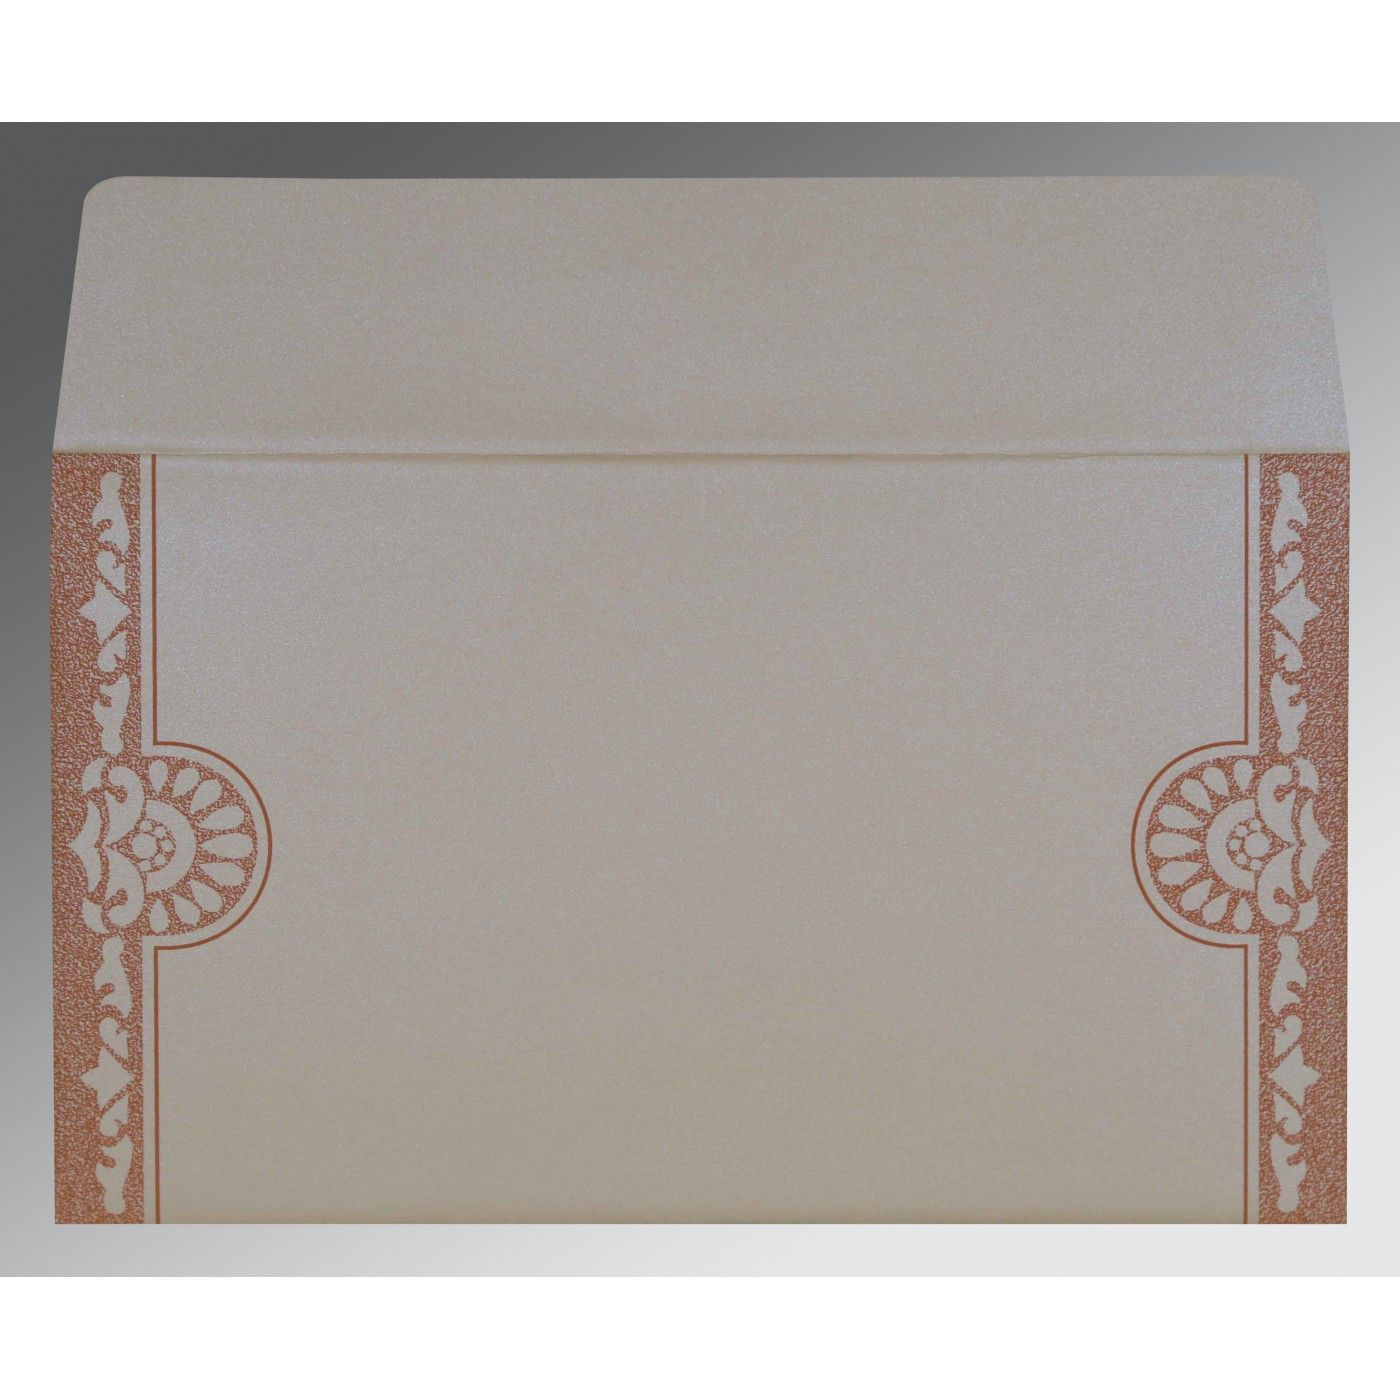 OFF-WHITE SHIMMERY FLORAL THEMED - SCREEN PRINTED WEDDING CARD : CRU-8227L - IndianWeddingCards